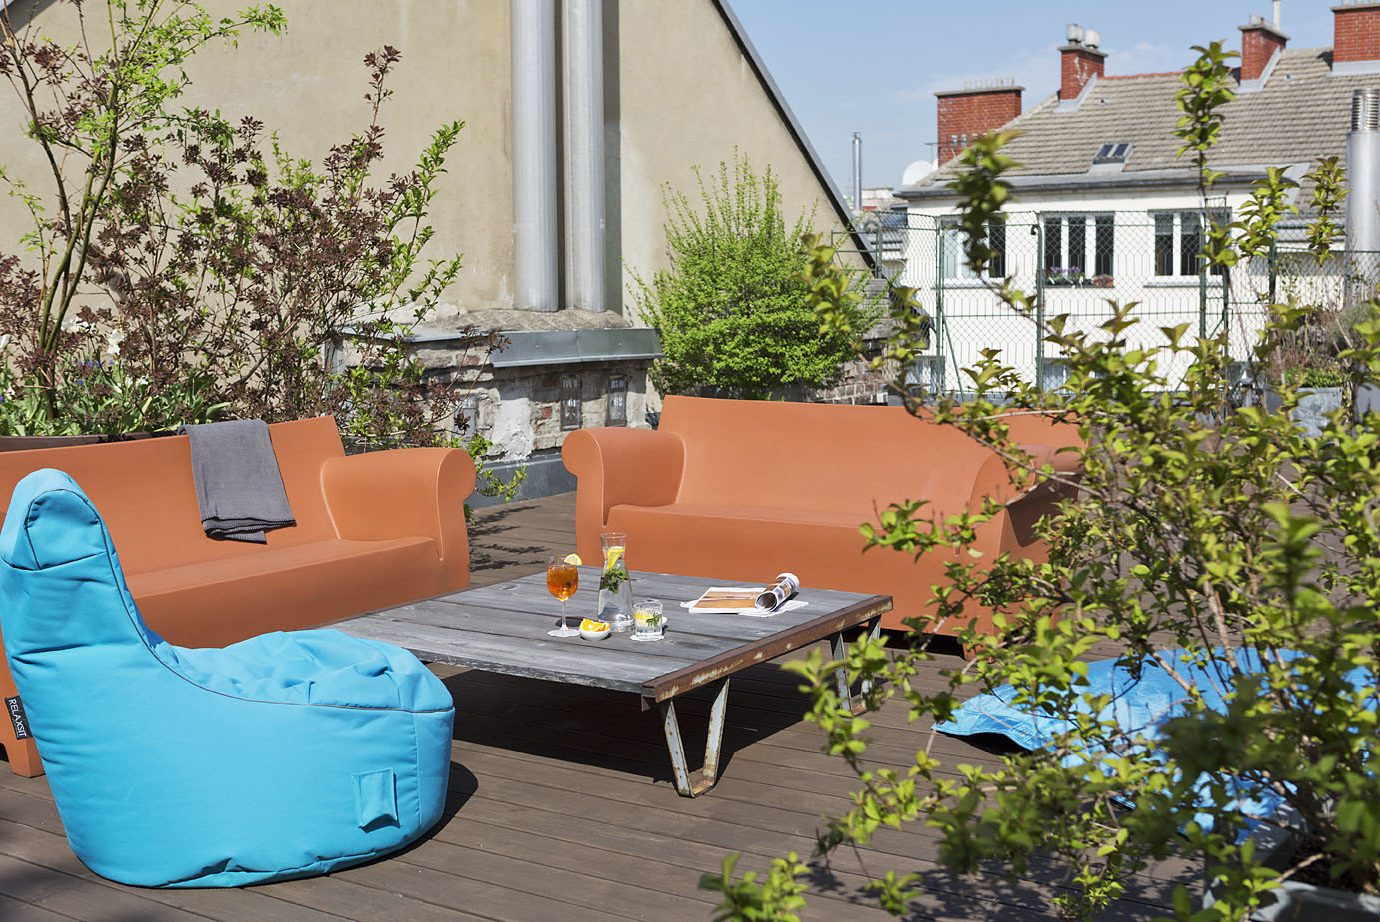 Austria europe Hotels Vienna backyard Patio furniture table yard outdoor furniture home outdoor structure Garden real estate Courtyard plant Balcony sunlounger house chair landscaping interior design